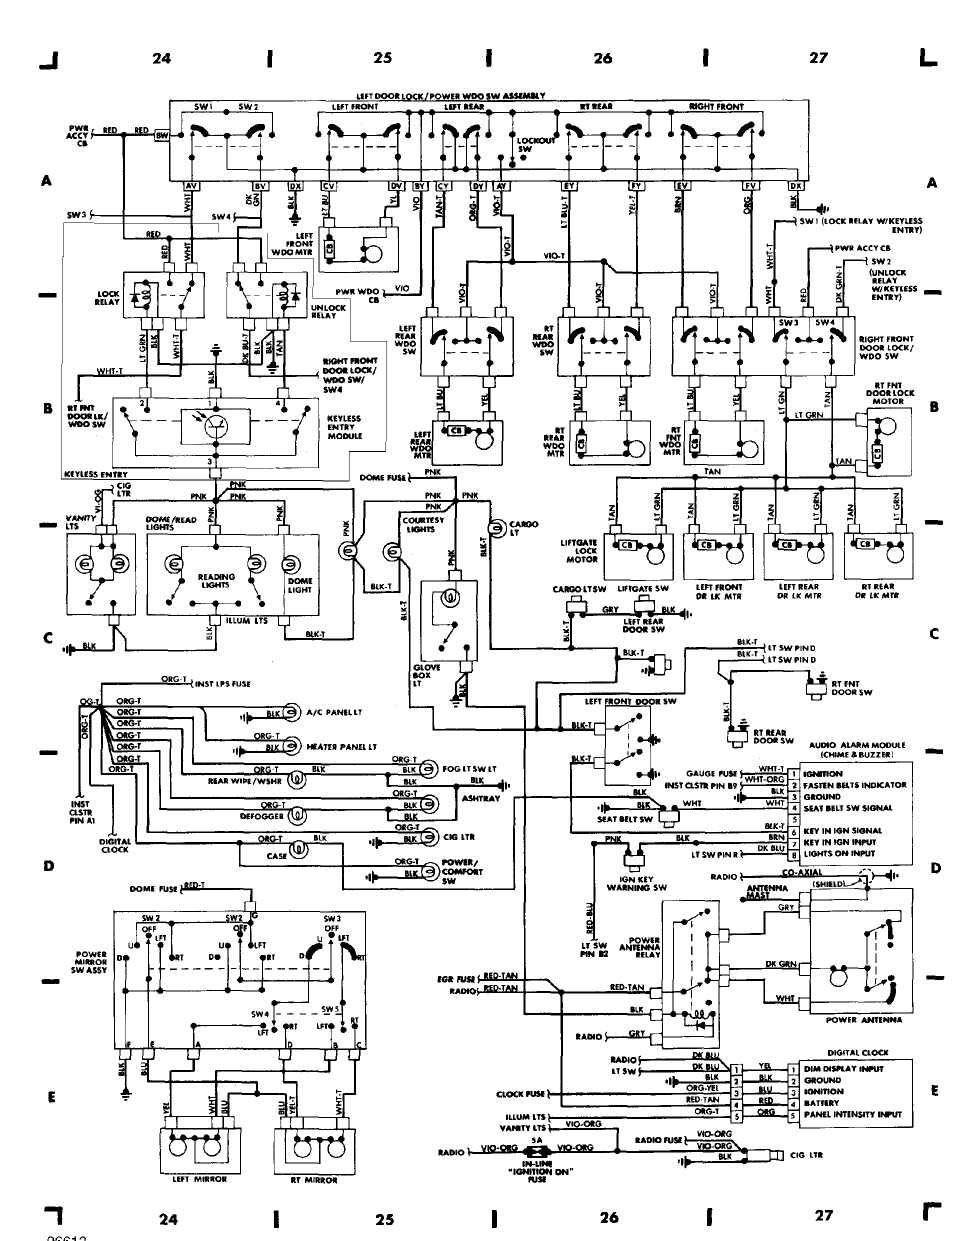 wiring_diagrams_html_61f5e0ad 2001 jeep wrangler wiring diagram 2001 mazda miata wiring diagram 2001 jeep cherokee fuse box diagram at gsmx.co